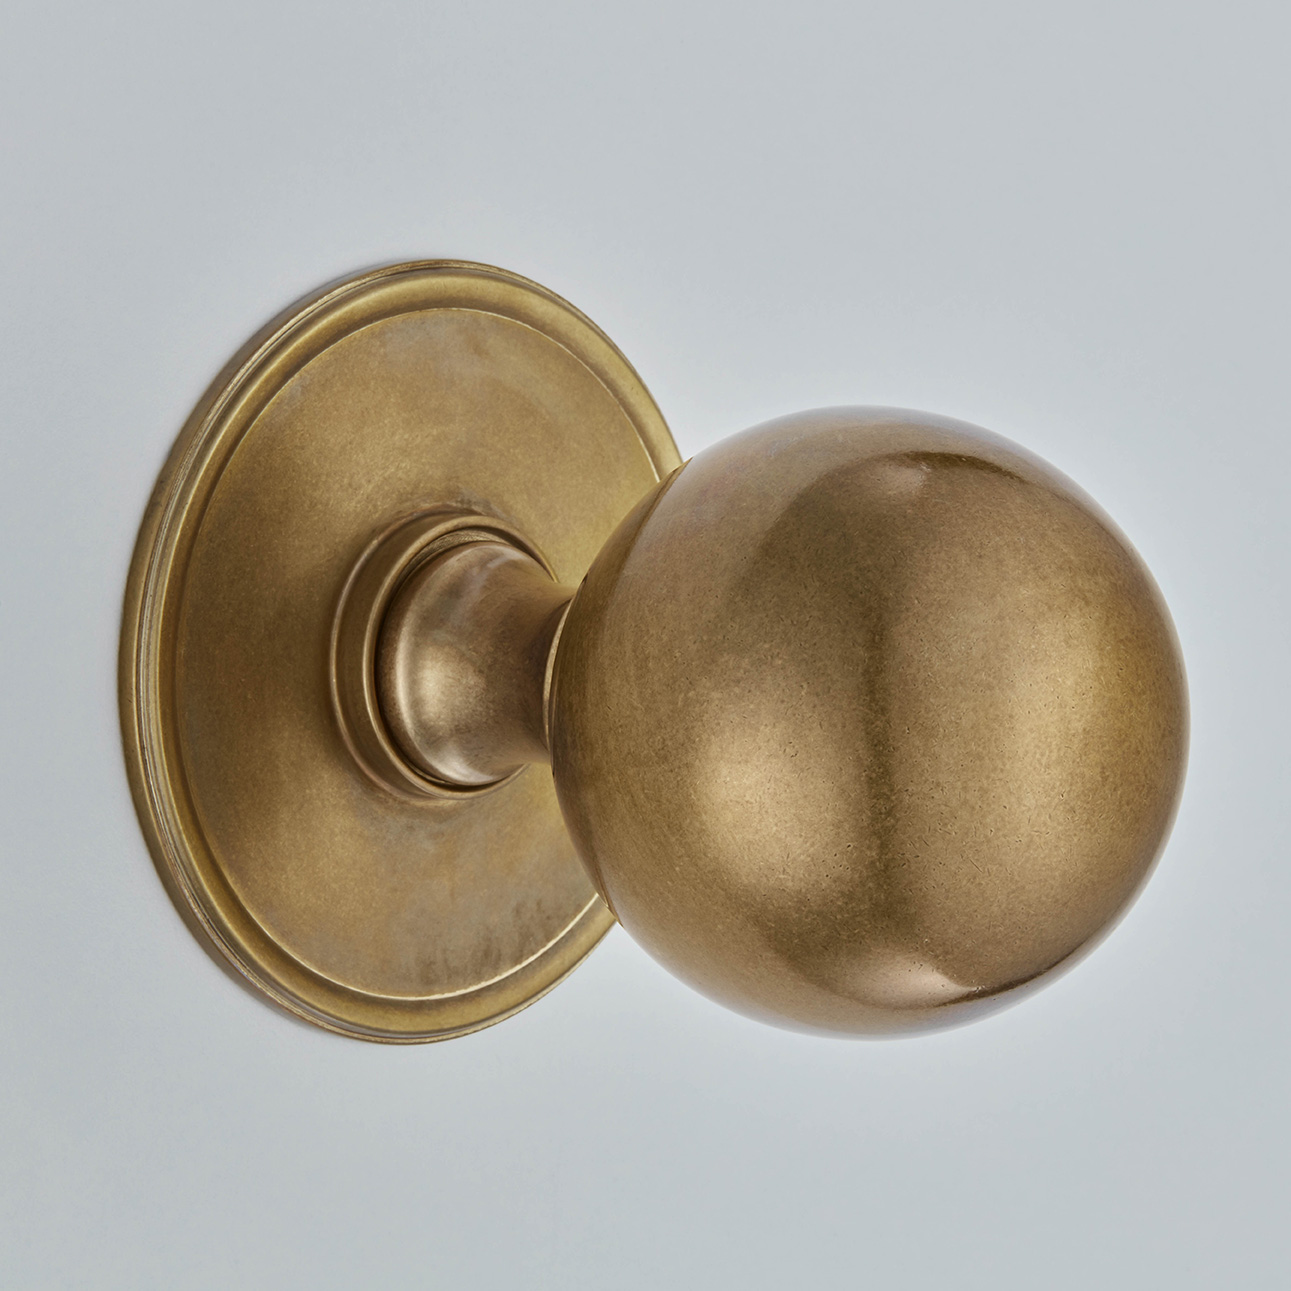 Ball Centre Door Knob On Round Rose